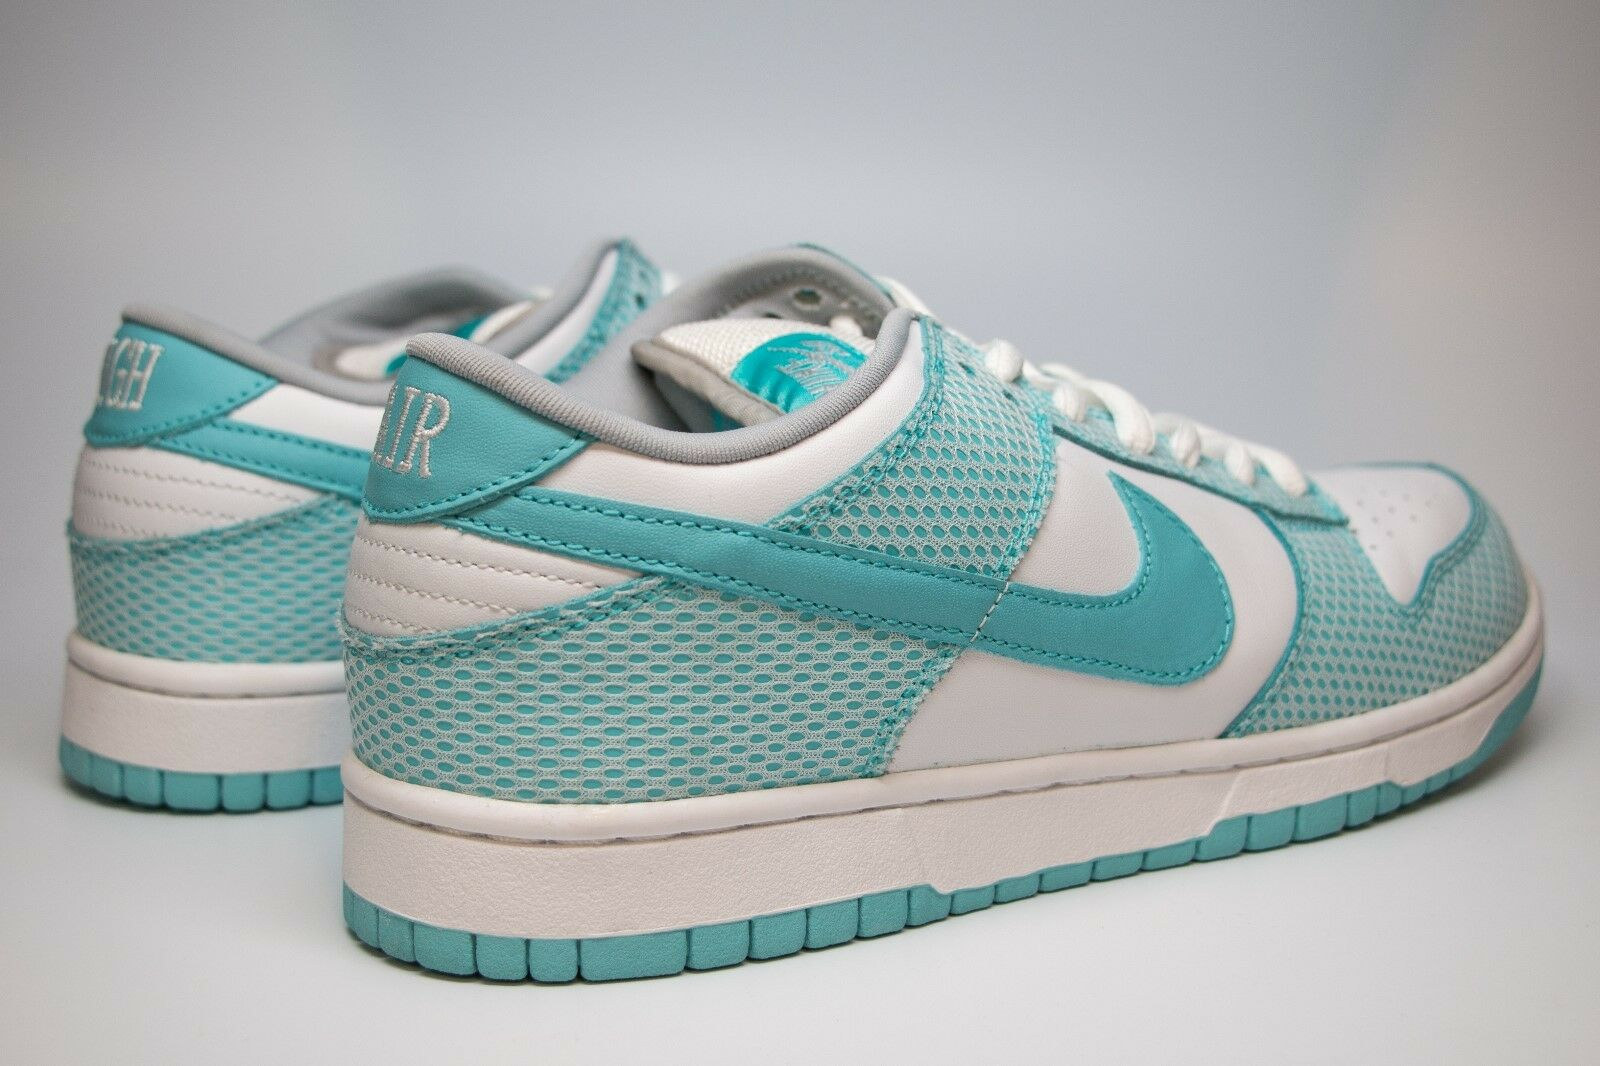 Nike Dunk Dunk Dunk Low SB  High Hair  or  Aqua Net     Size 10   Style 313170-142 feda0b